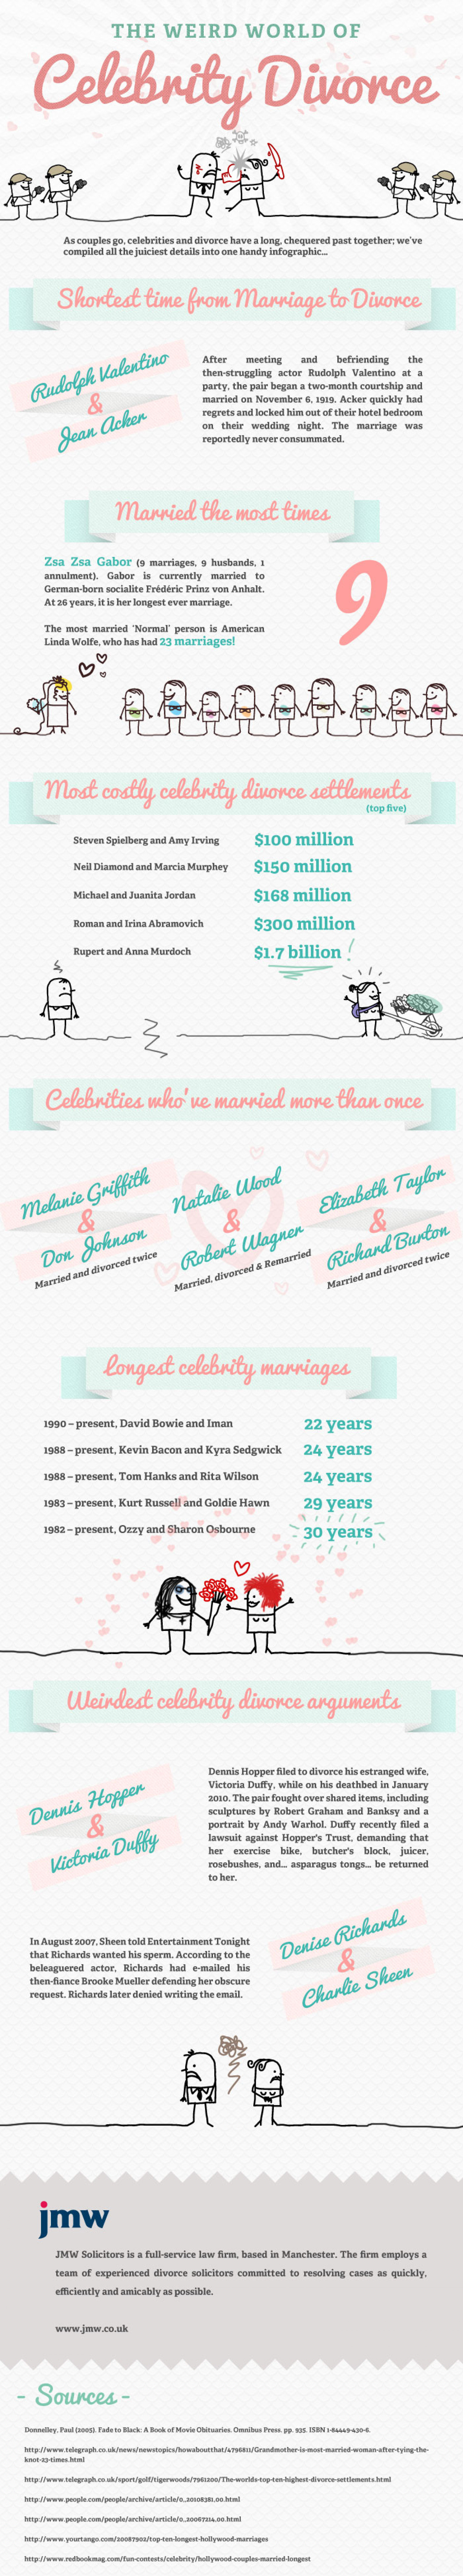 The Weird World of Celebrity Divorce Infographic